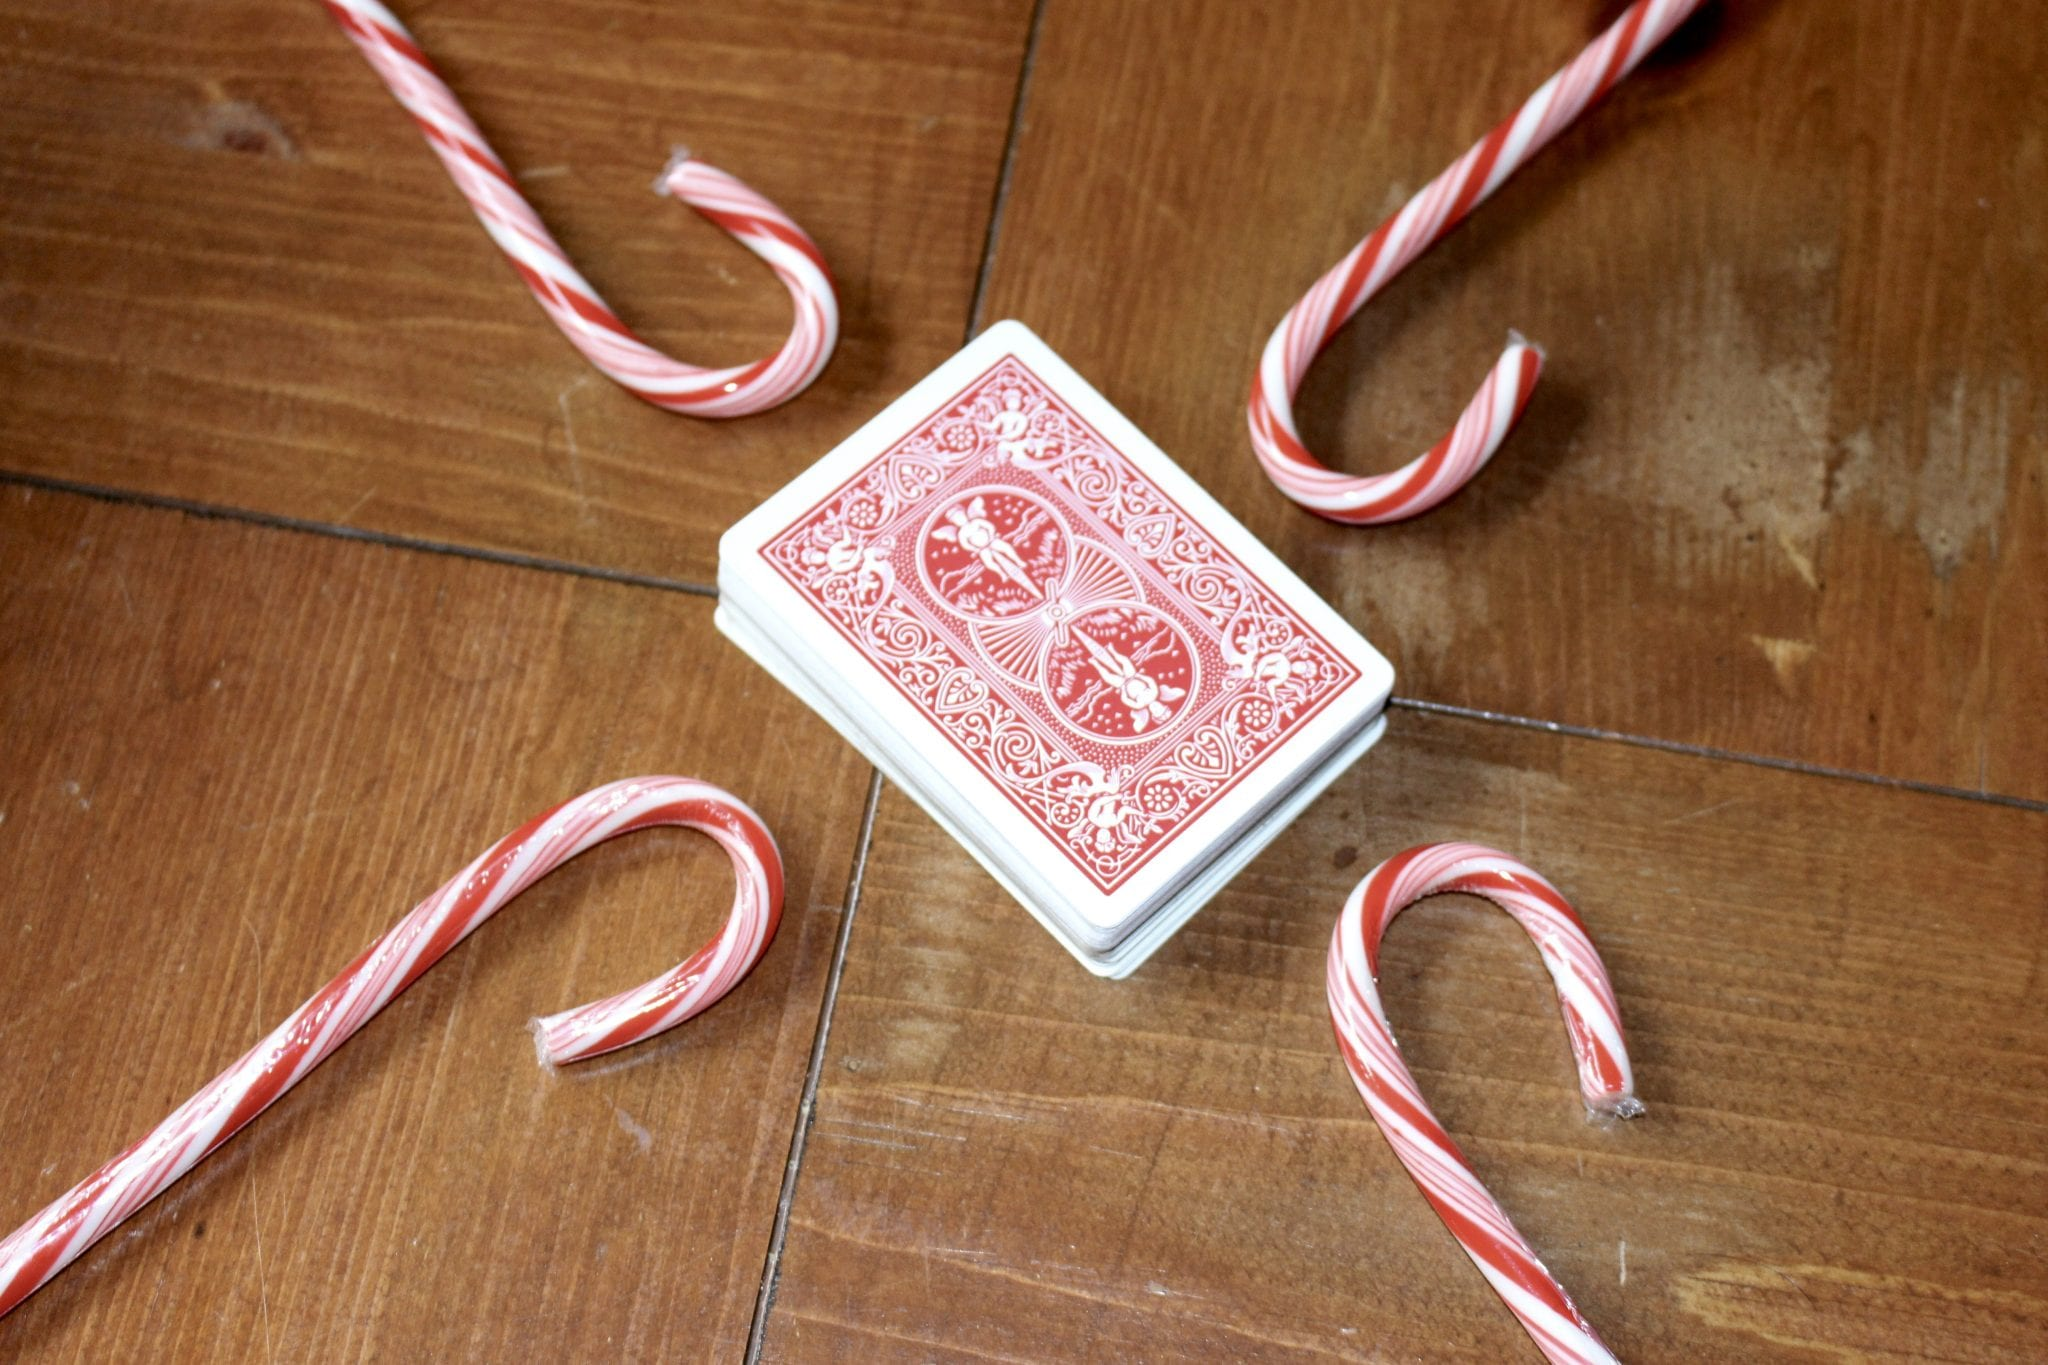 The Candy Cane Game